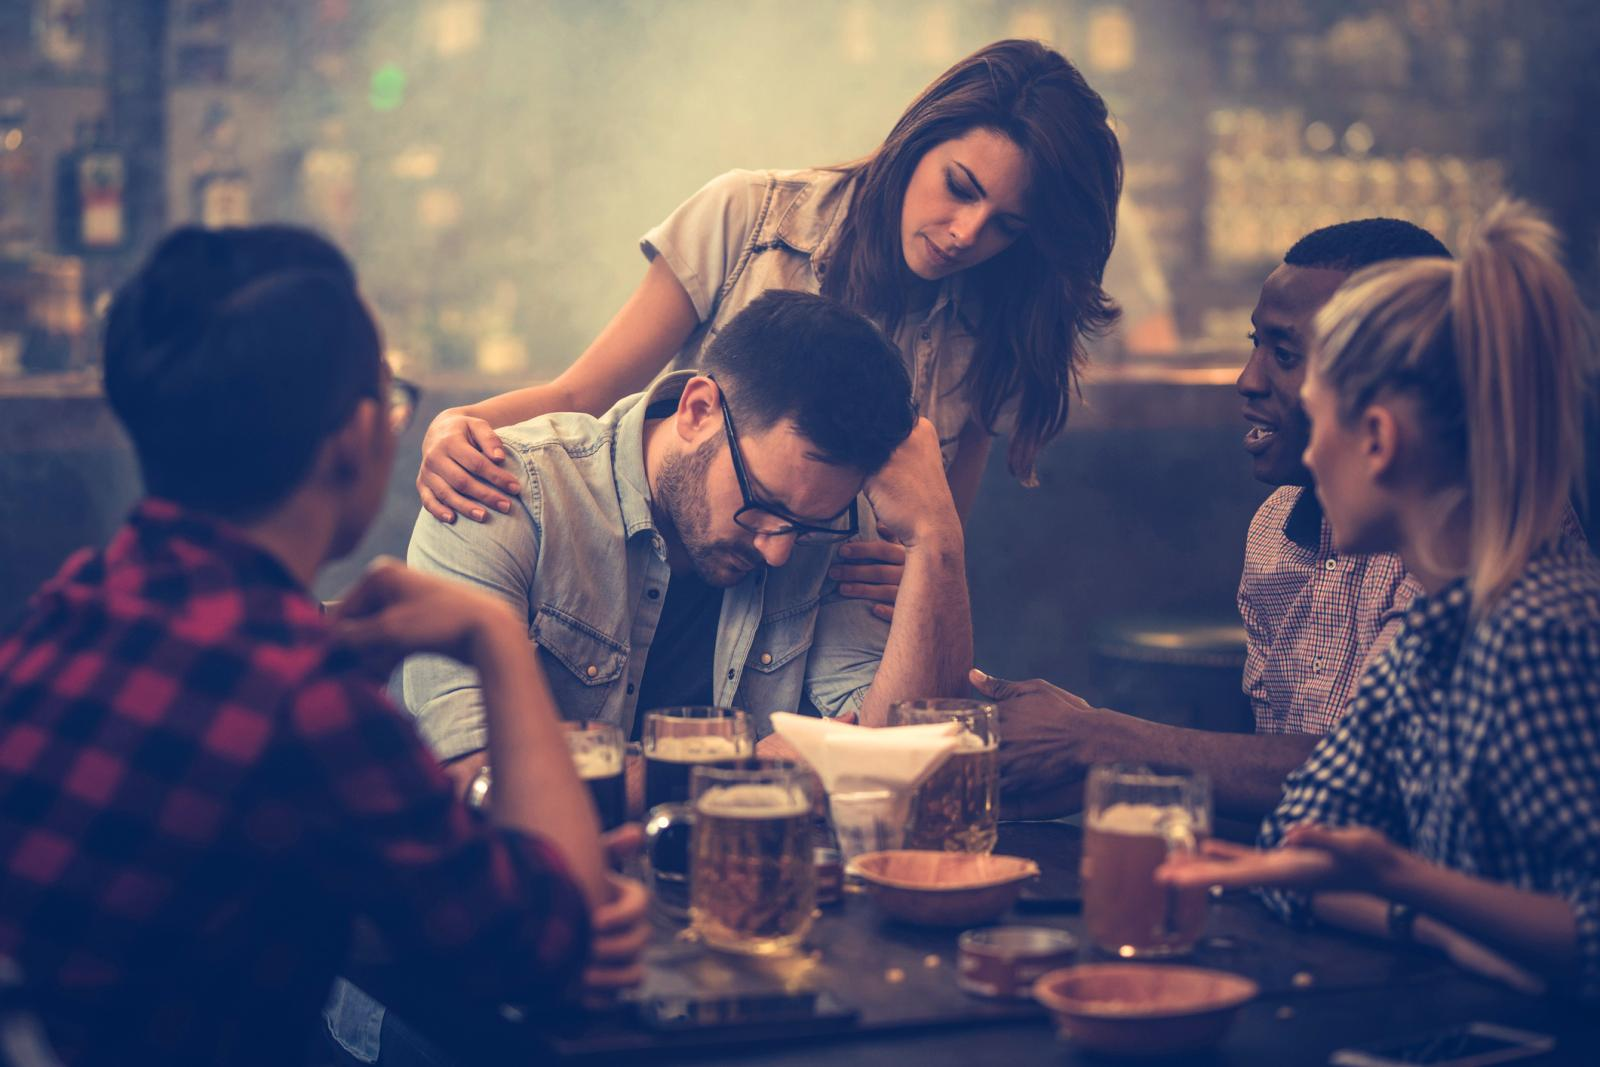 Group of friends consoling their friend who is sitting displeased in a bar